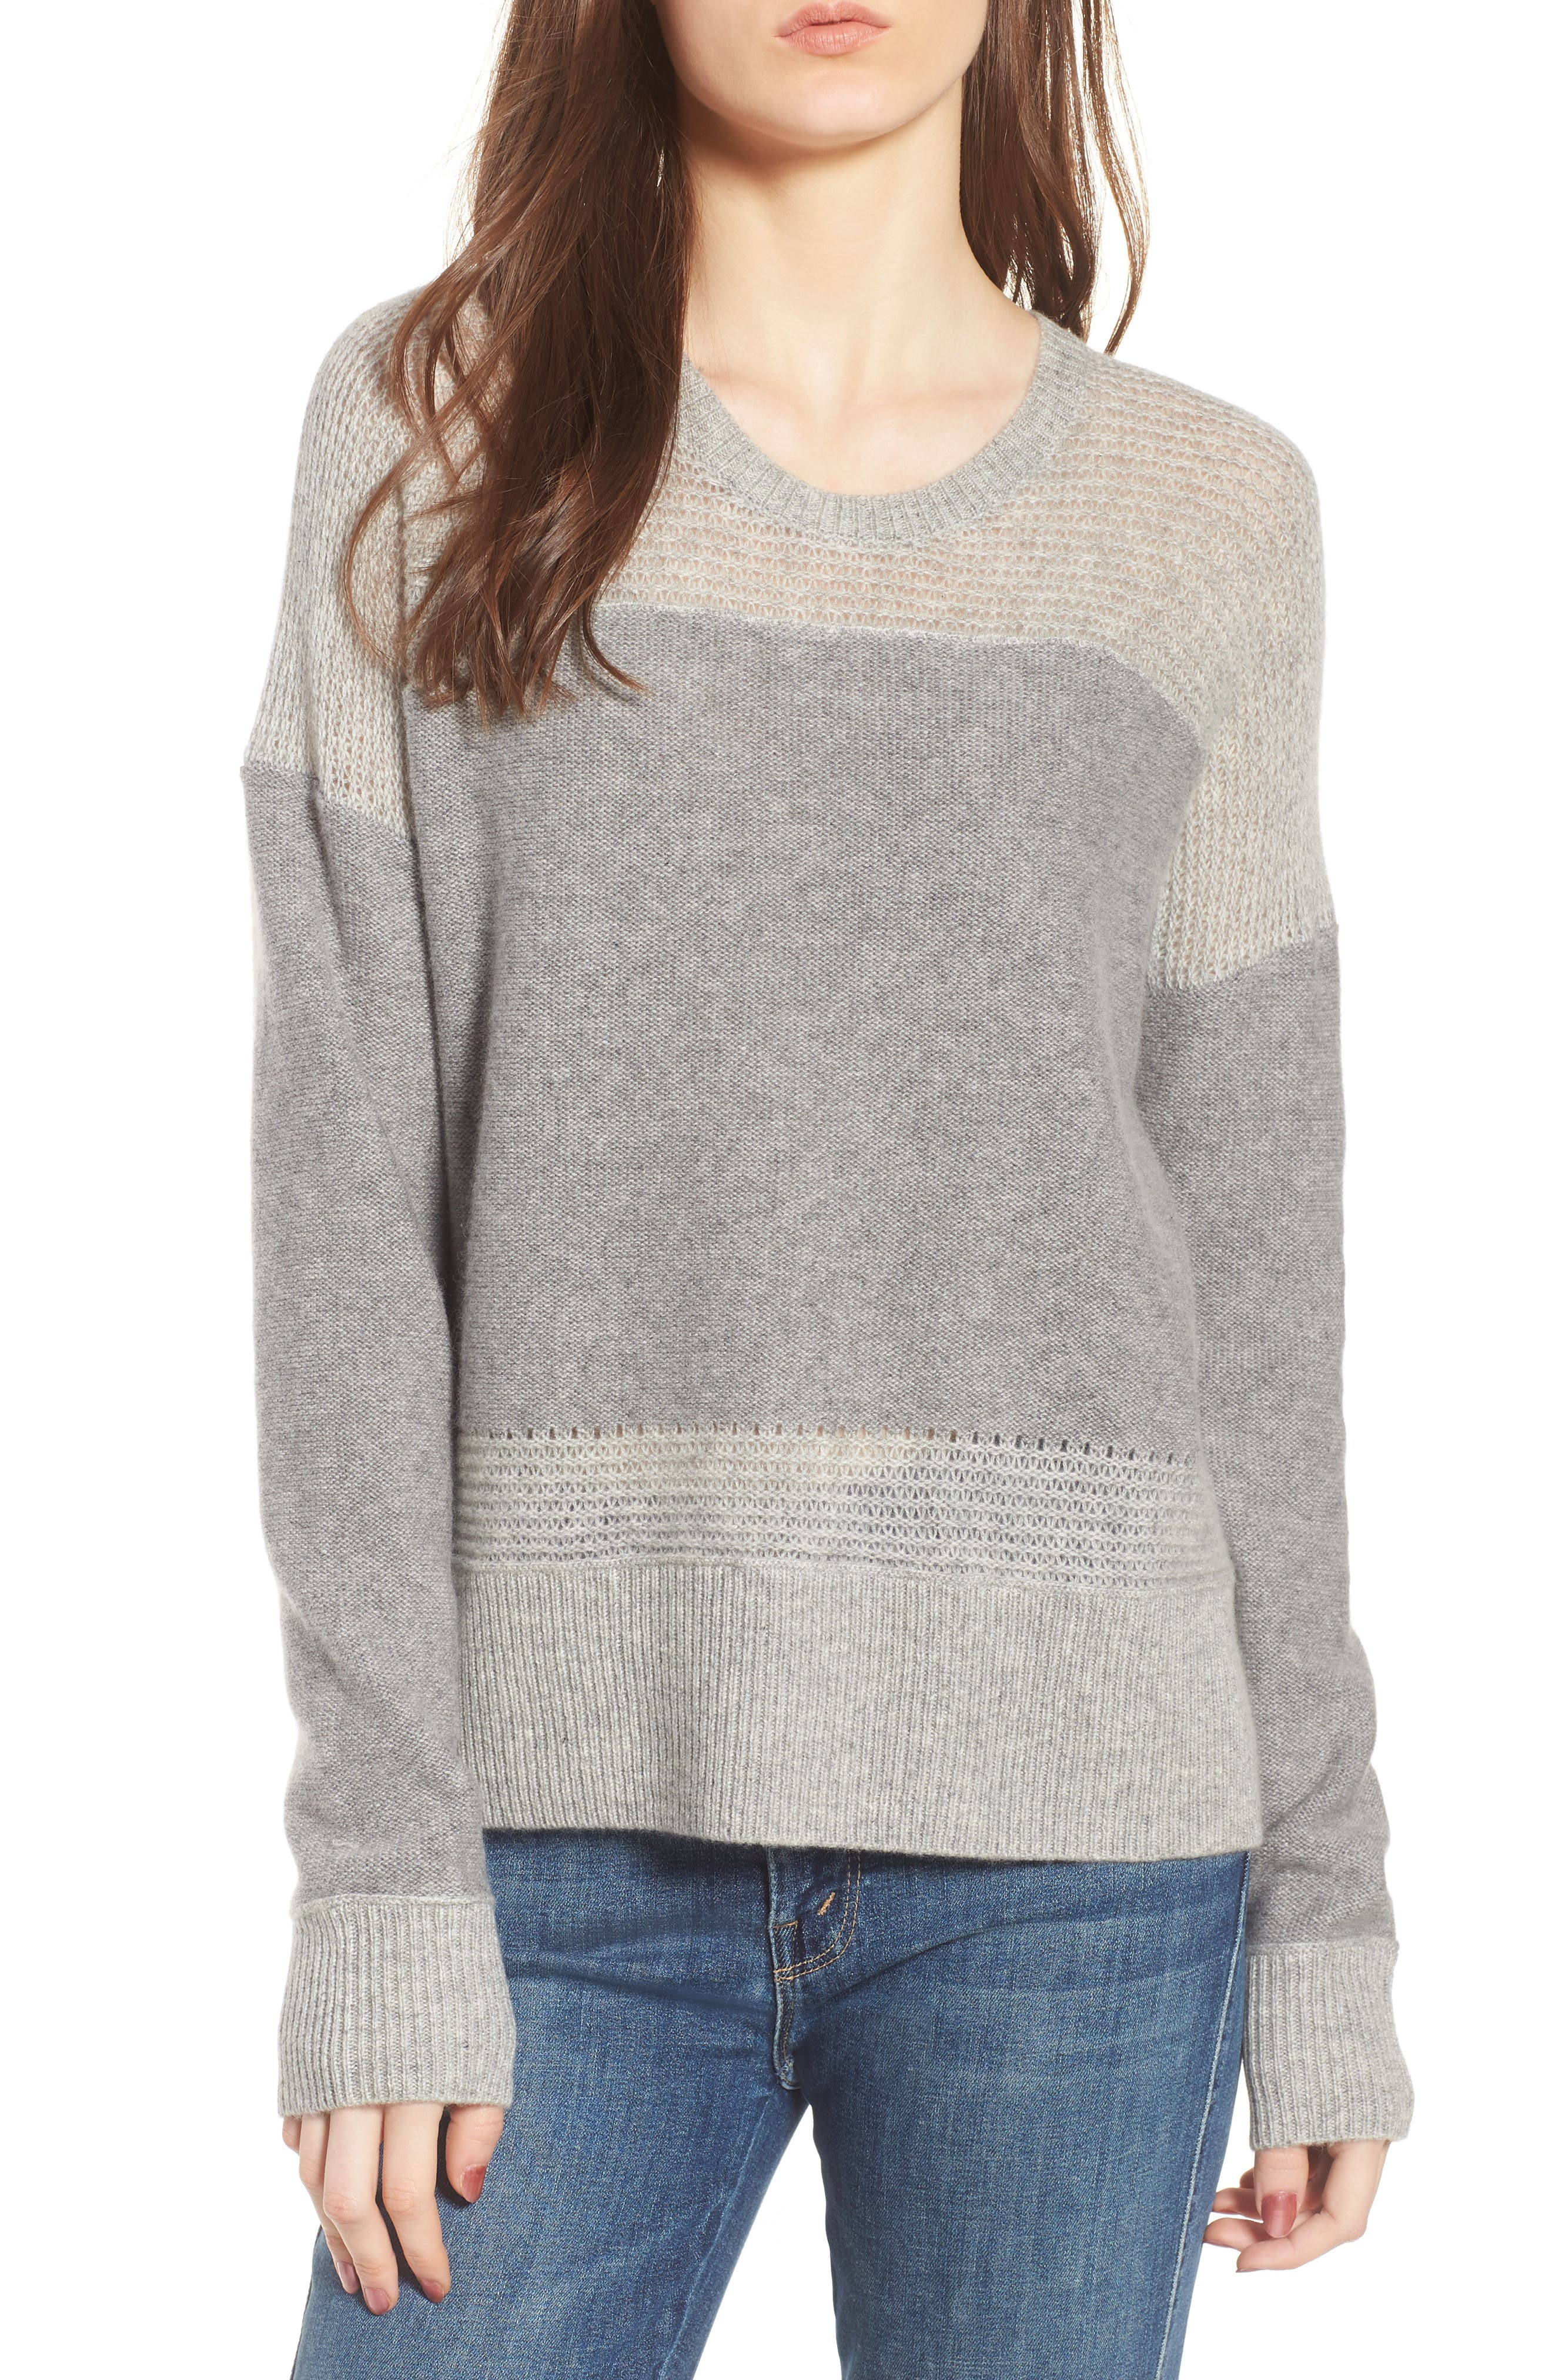 James Perse Open Stitch Cashmere Sweater